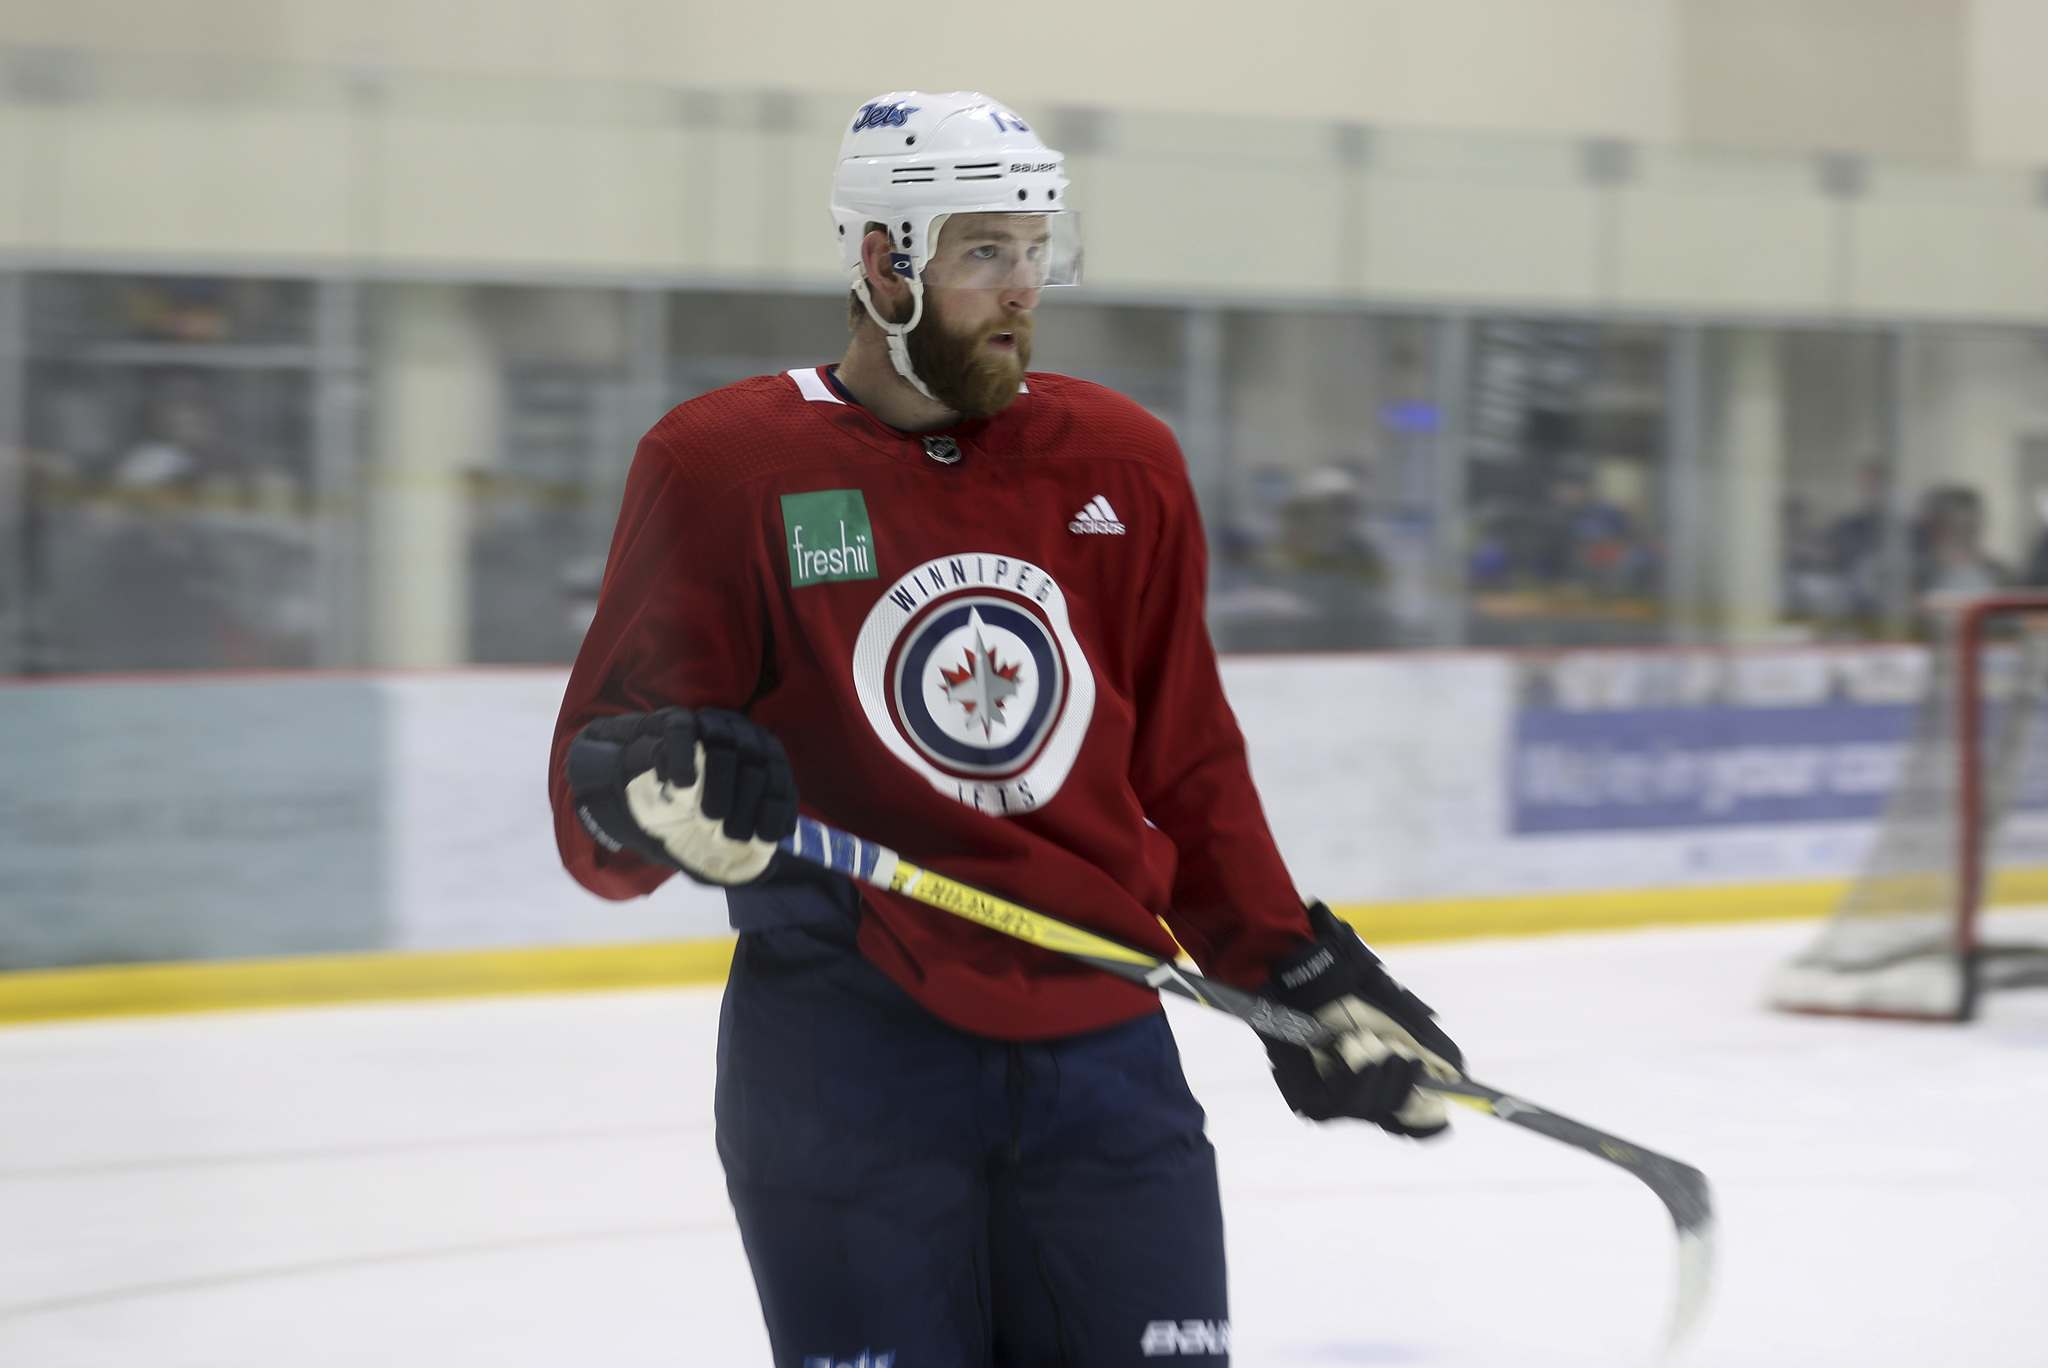 Joe Morrow will be paired with Jacob Trouba against the struggling Ducks. (Trevor Hagan / Free Press files)</p>